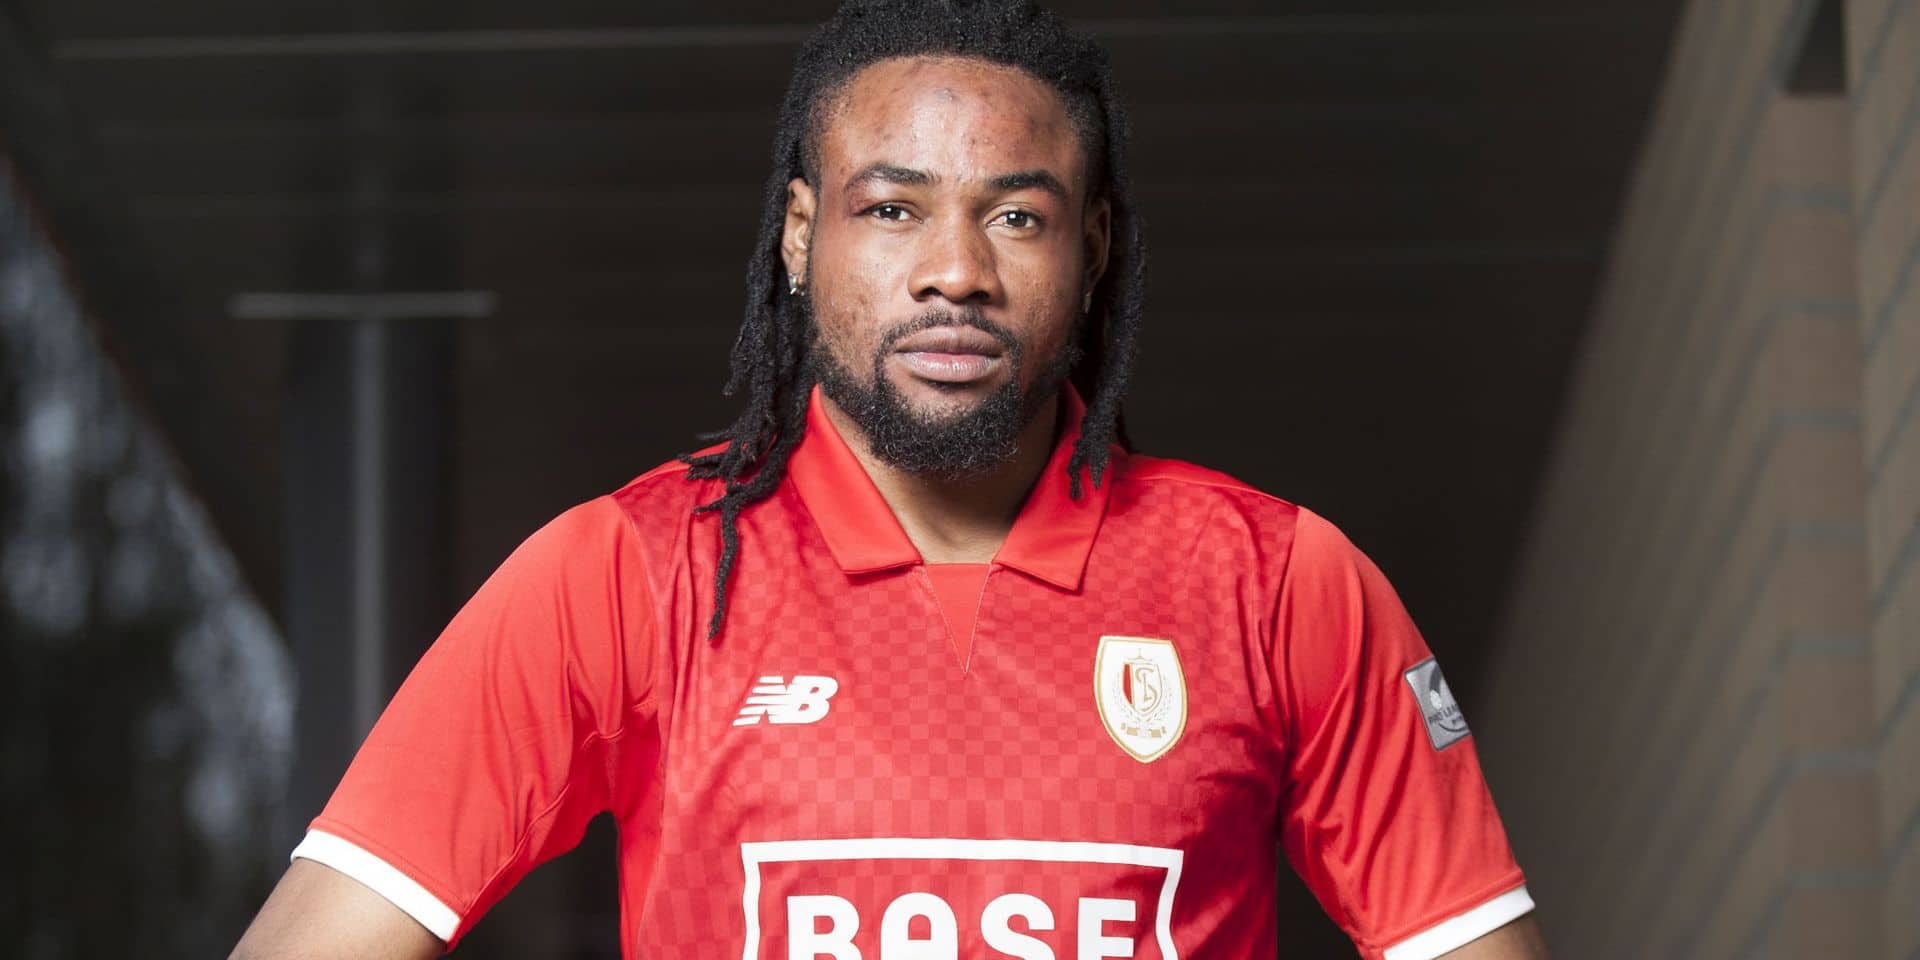 Congolese defender Christian Luyindama of Standard de Liege pictured during a photoshoot in Liege, Thursday 05 April 2018. BELGA PHOTO CHRISTOPHE KETELS